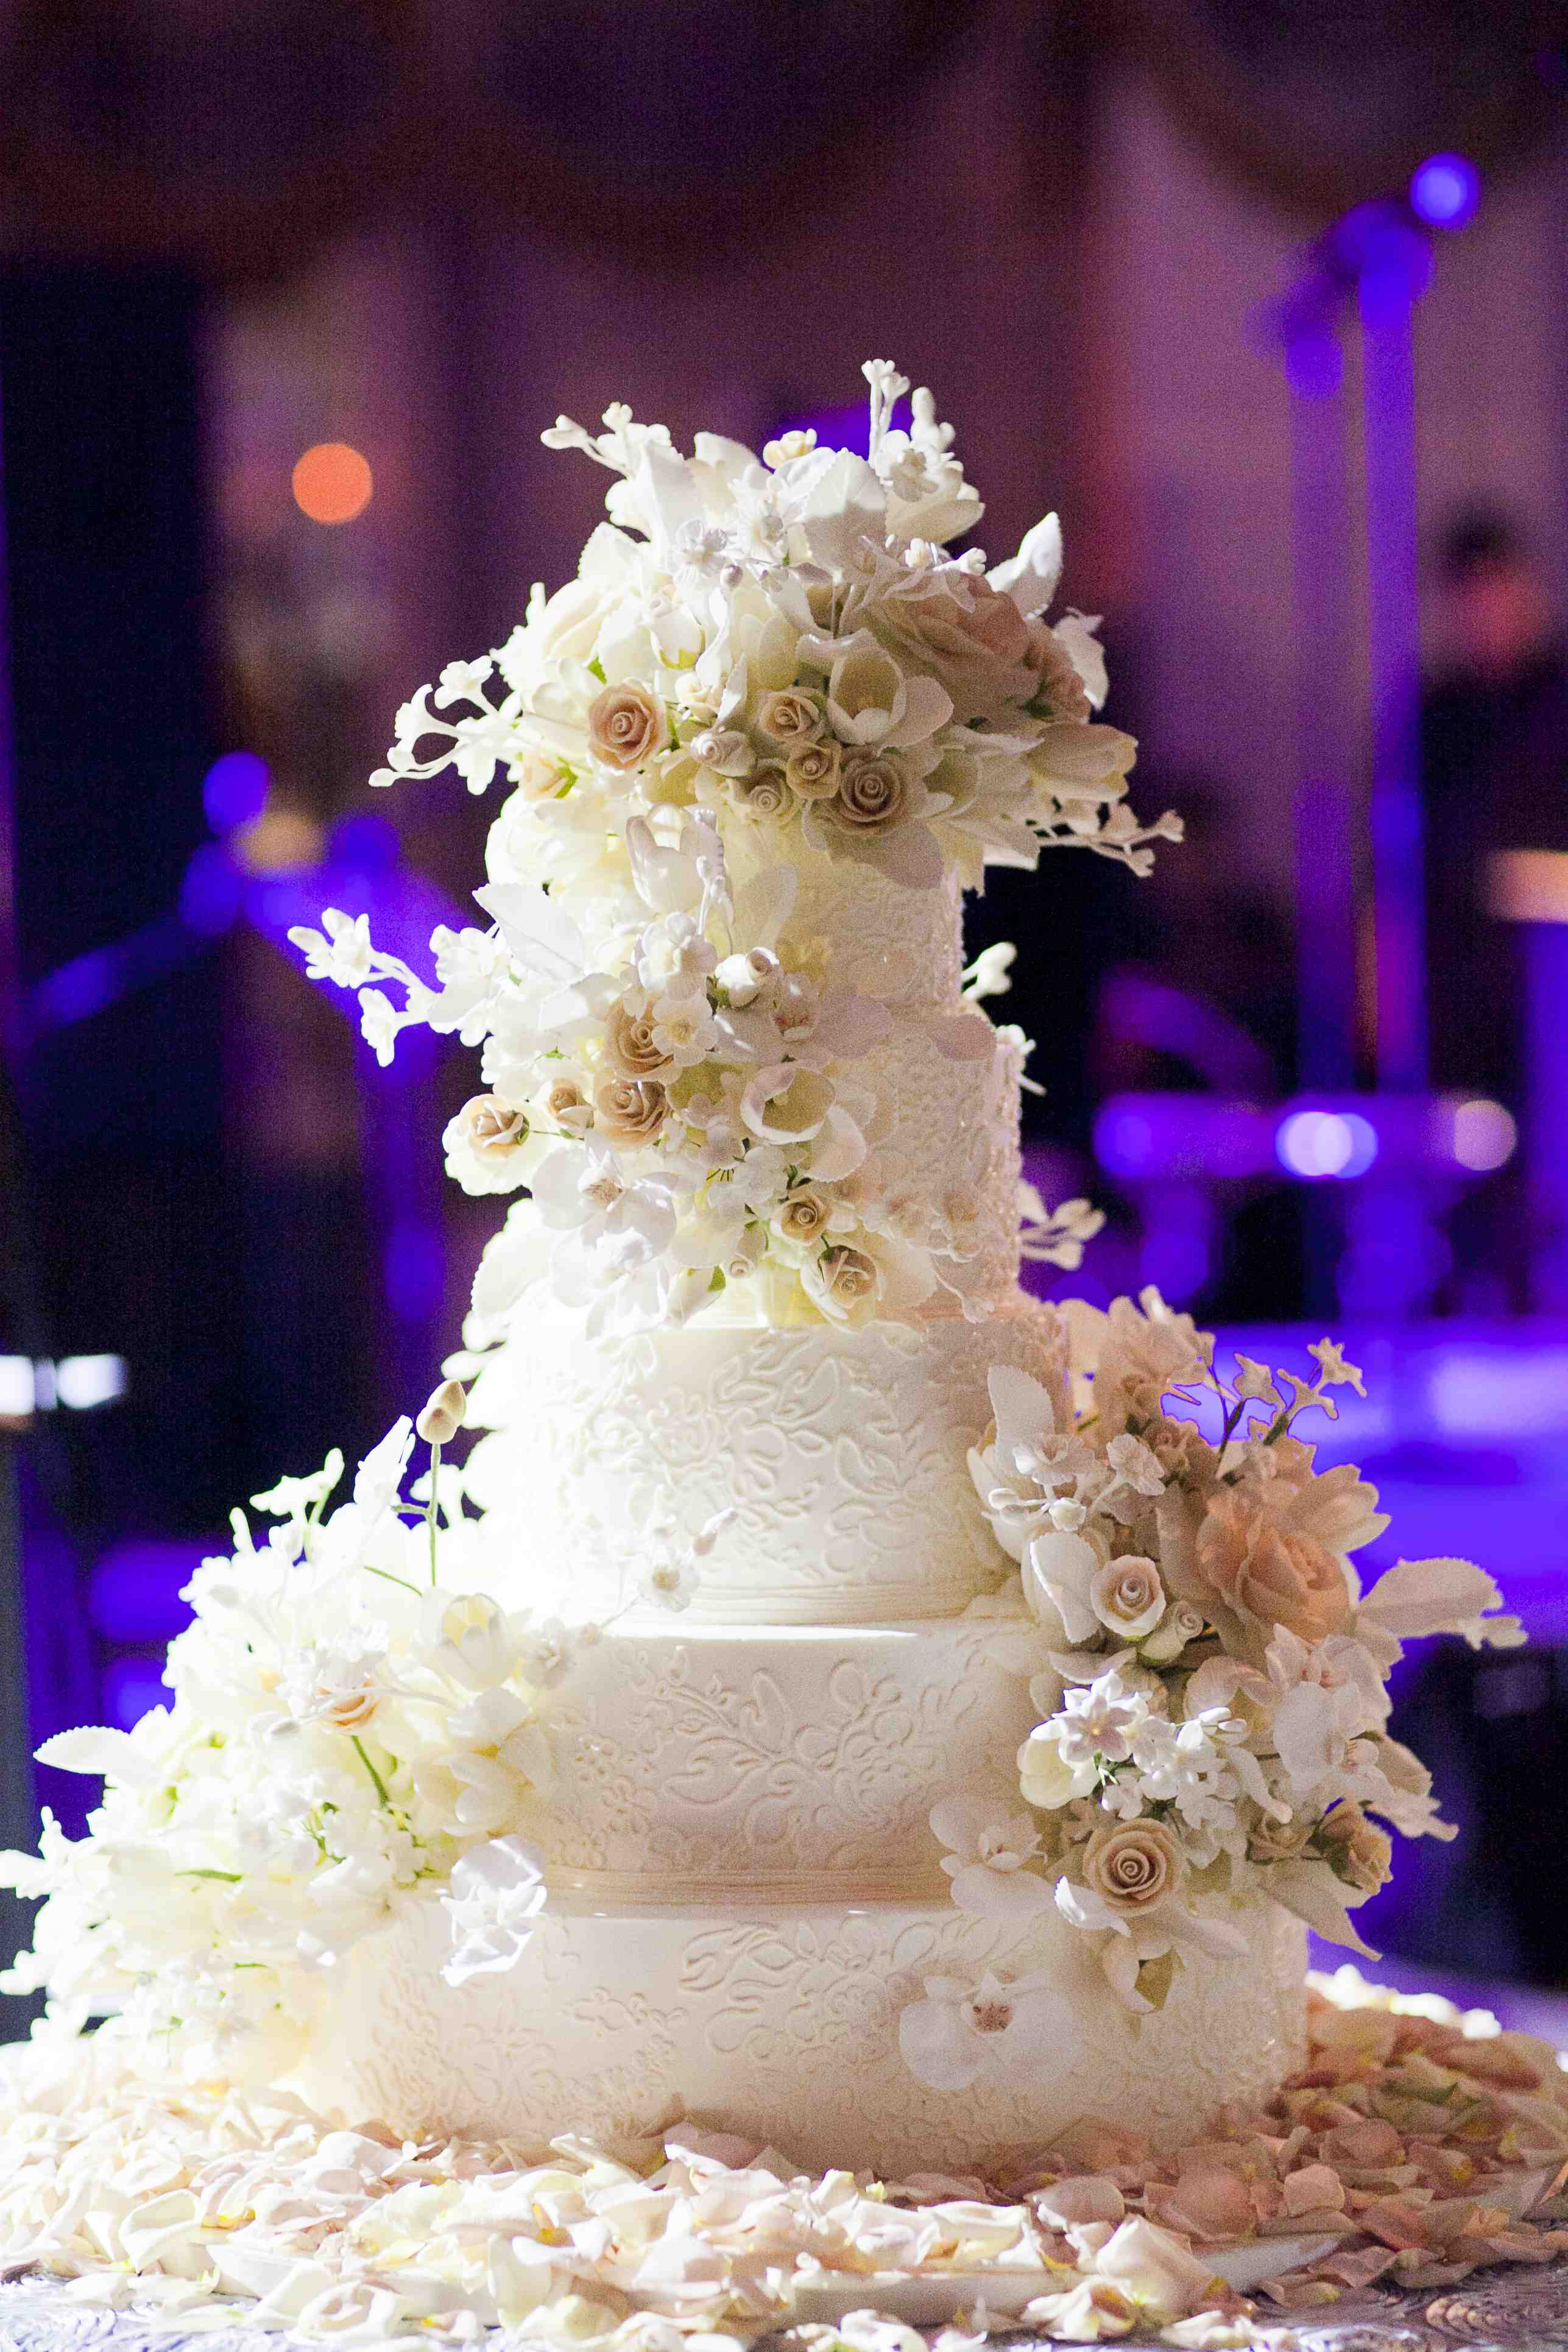 Wedding Cakes Pretty Wedding Confections with Lace Patterns